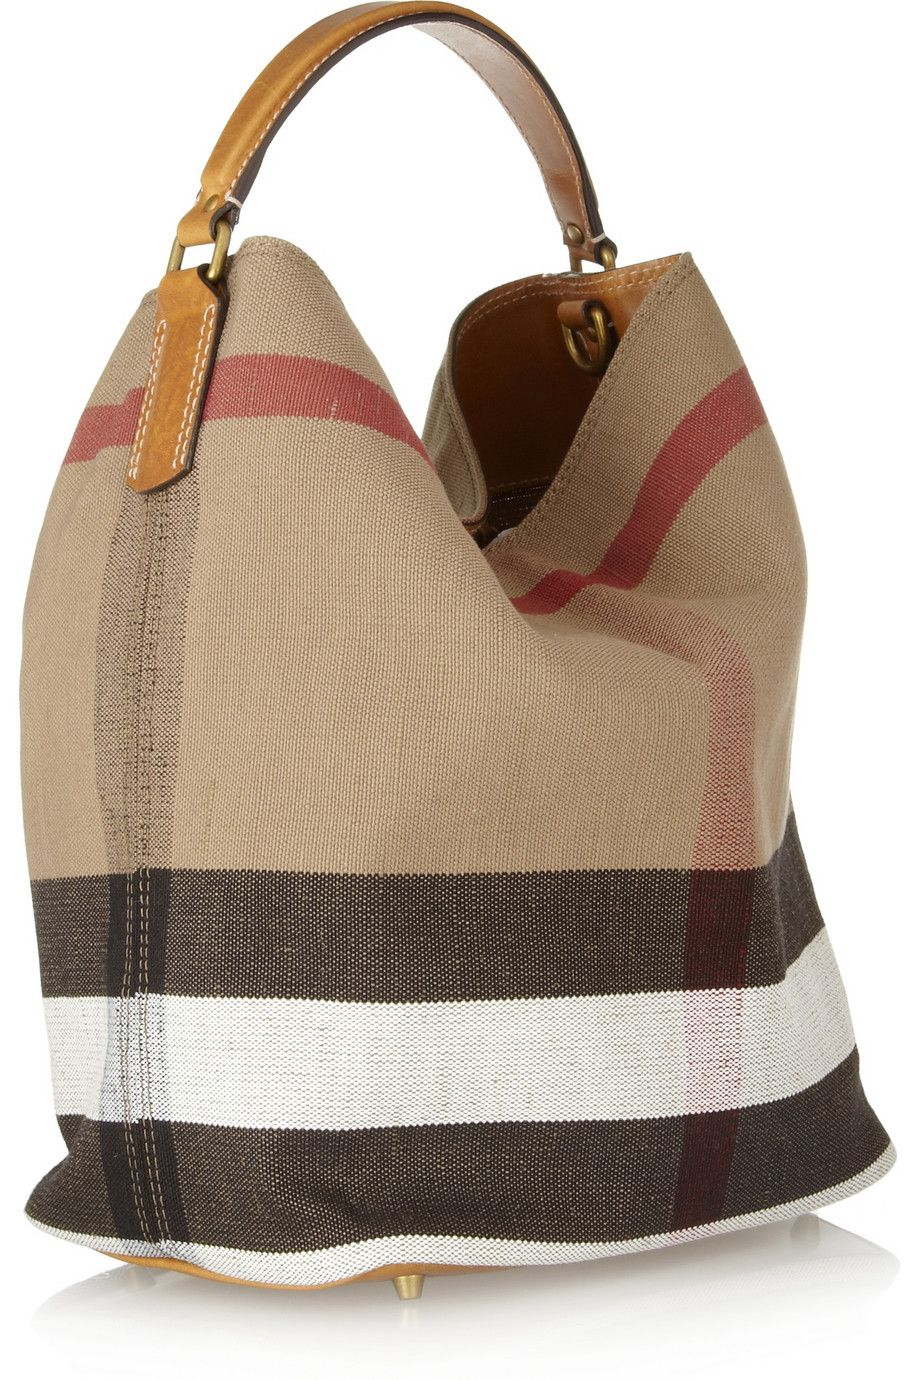 Burberry Shoes   Accessories   Susanna checked canvas hobo bag ... d8d4f1b152